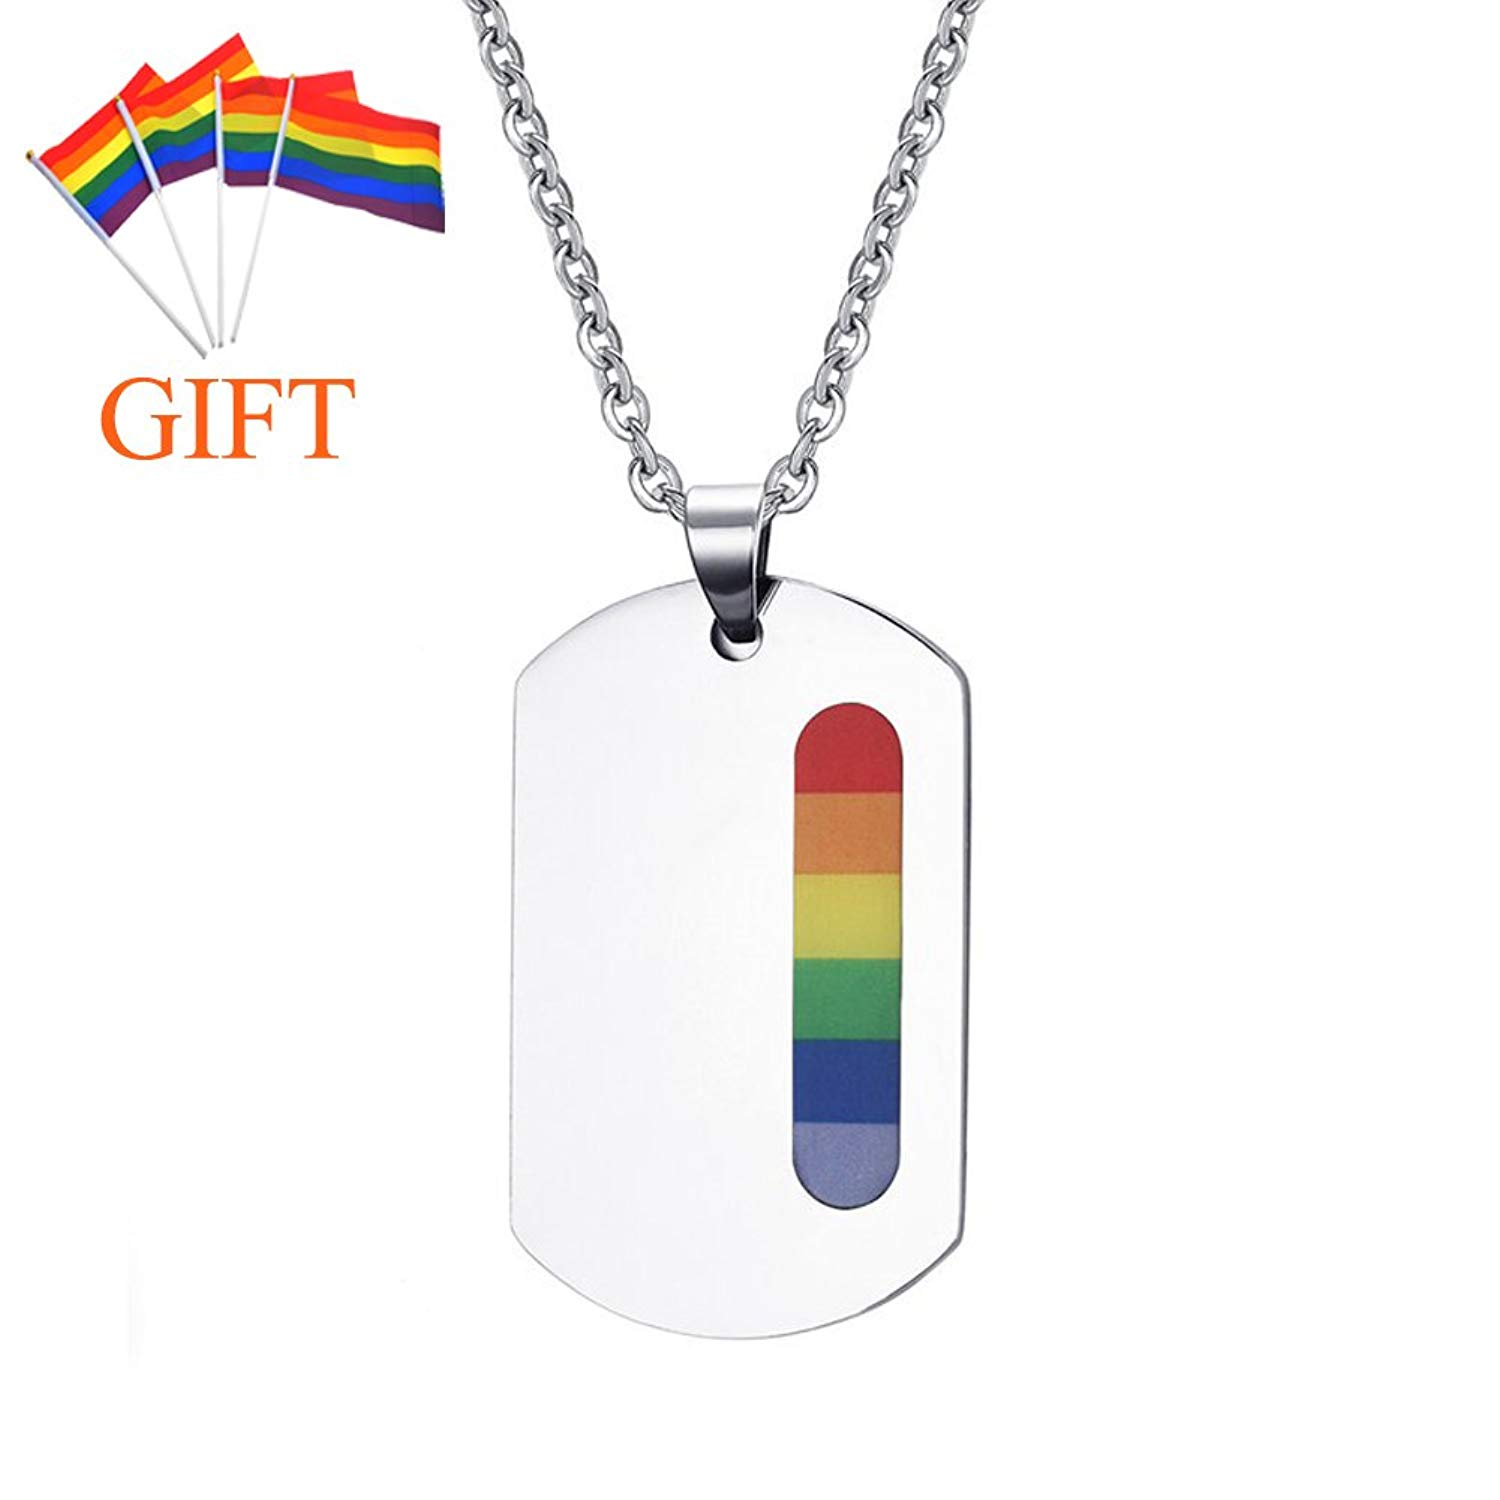 LF Personalized Stainless Steel Gay Pride Necklace Rainbow Pride LGBT Lesbian Gay Inspirational Friendship Dog Tag with Gay Pride Flag Gift for Marriage Engagement IDAHO,Free Engraving Customize